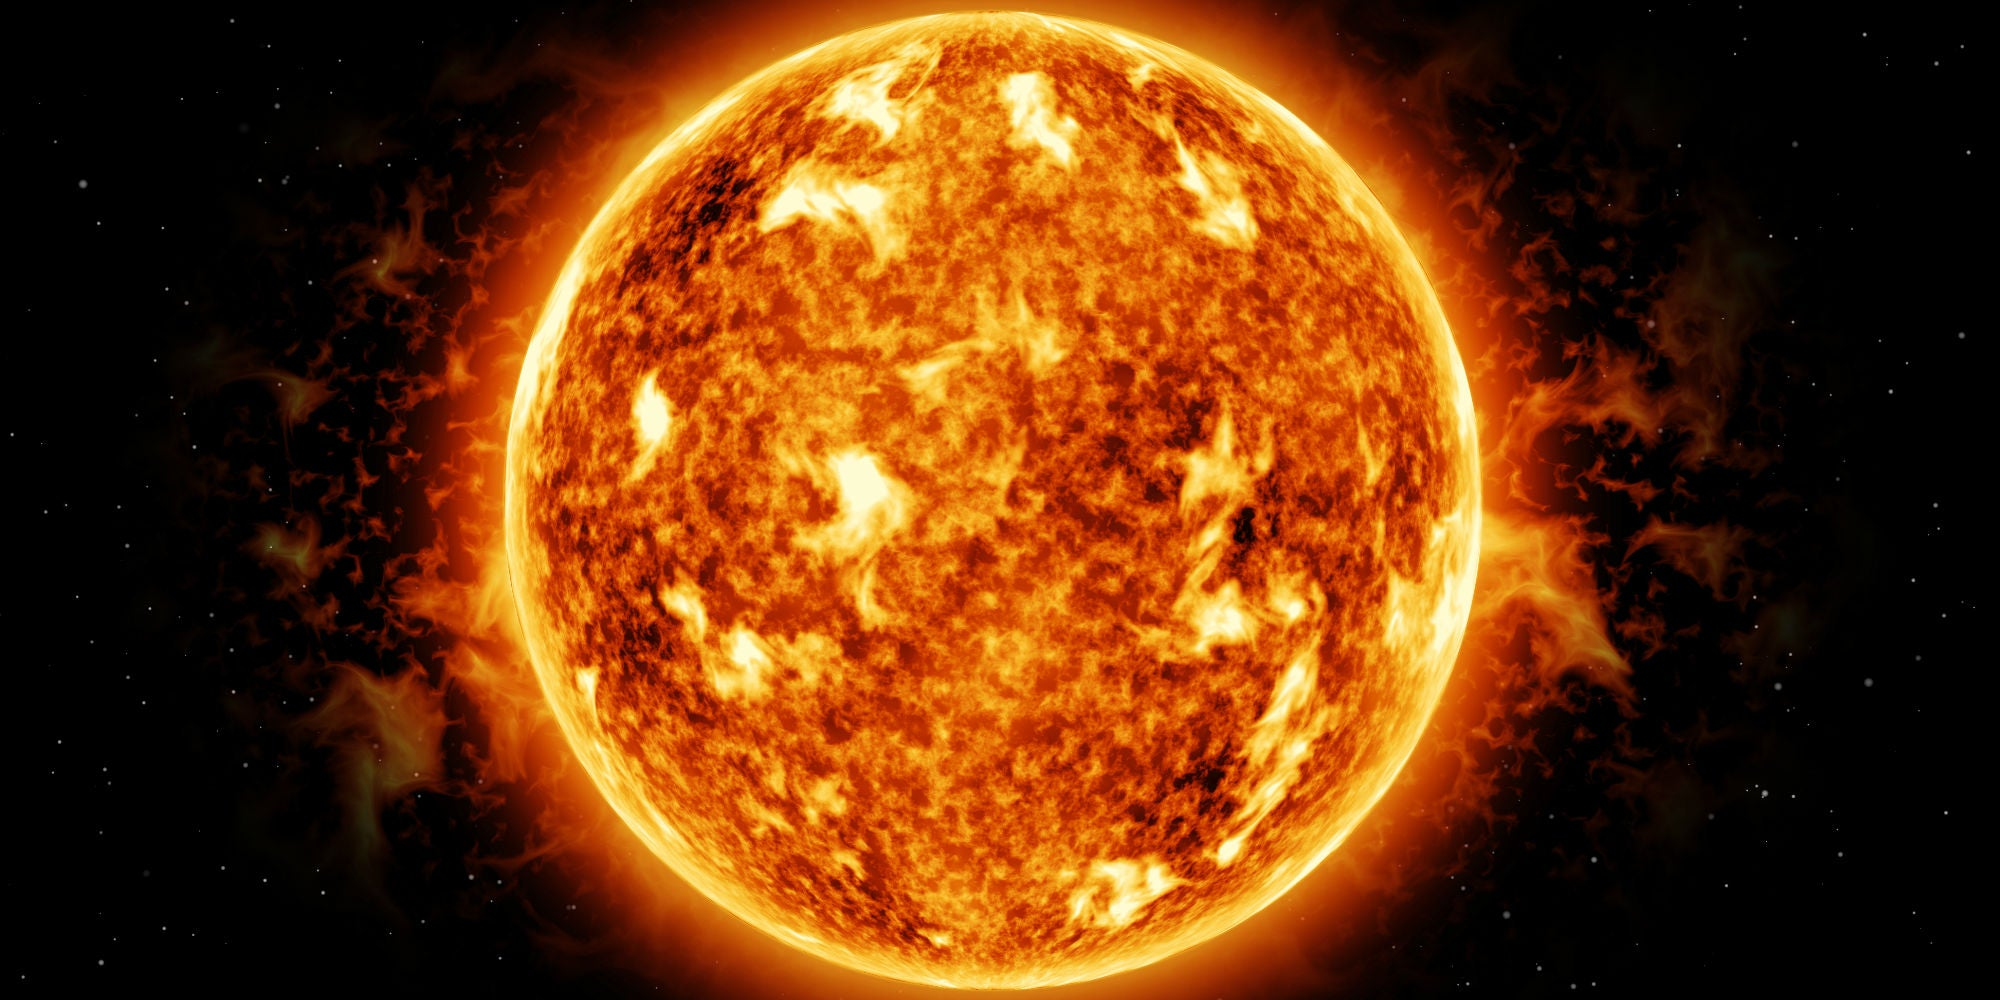 Scientists suggest 'dimming the sun' to solve global warming